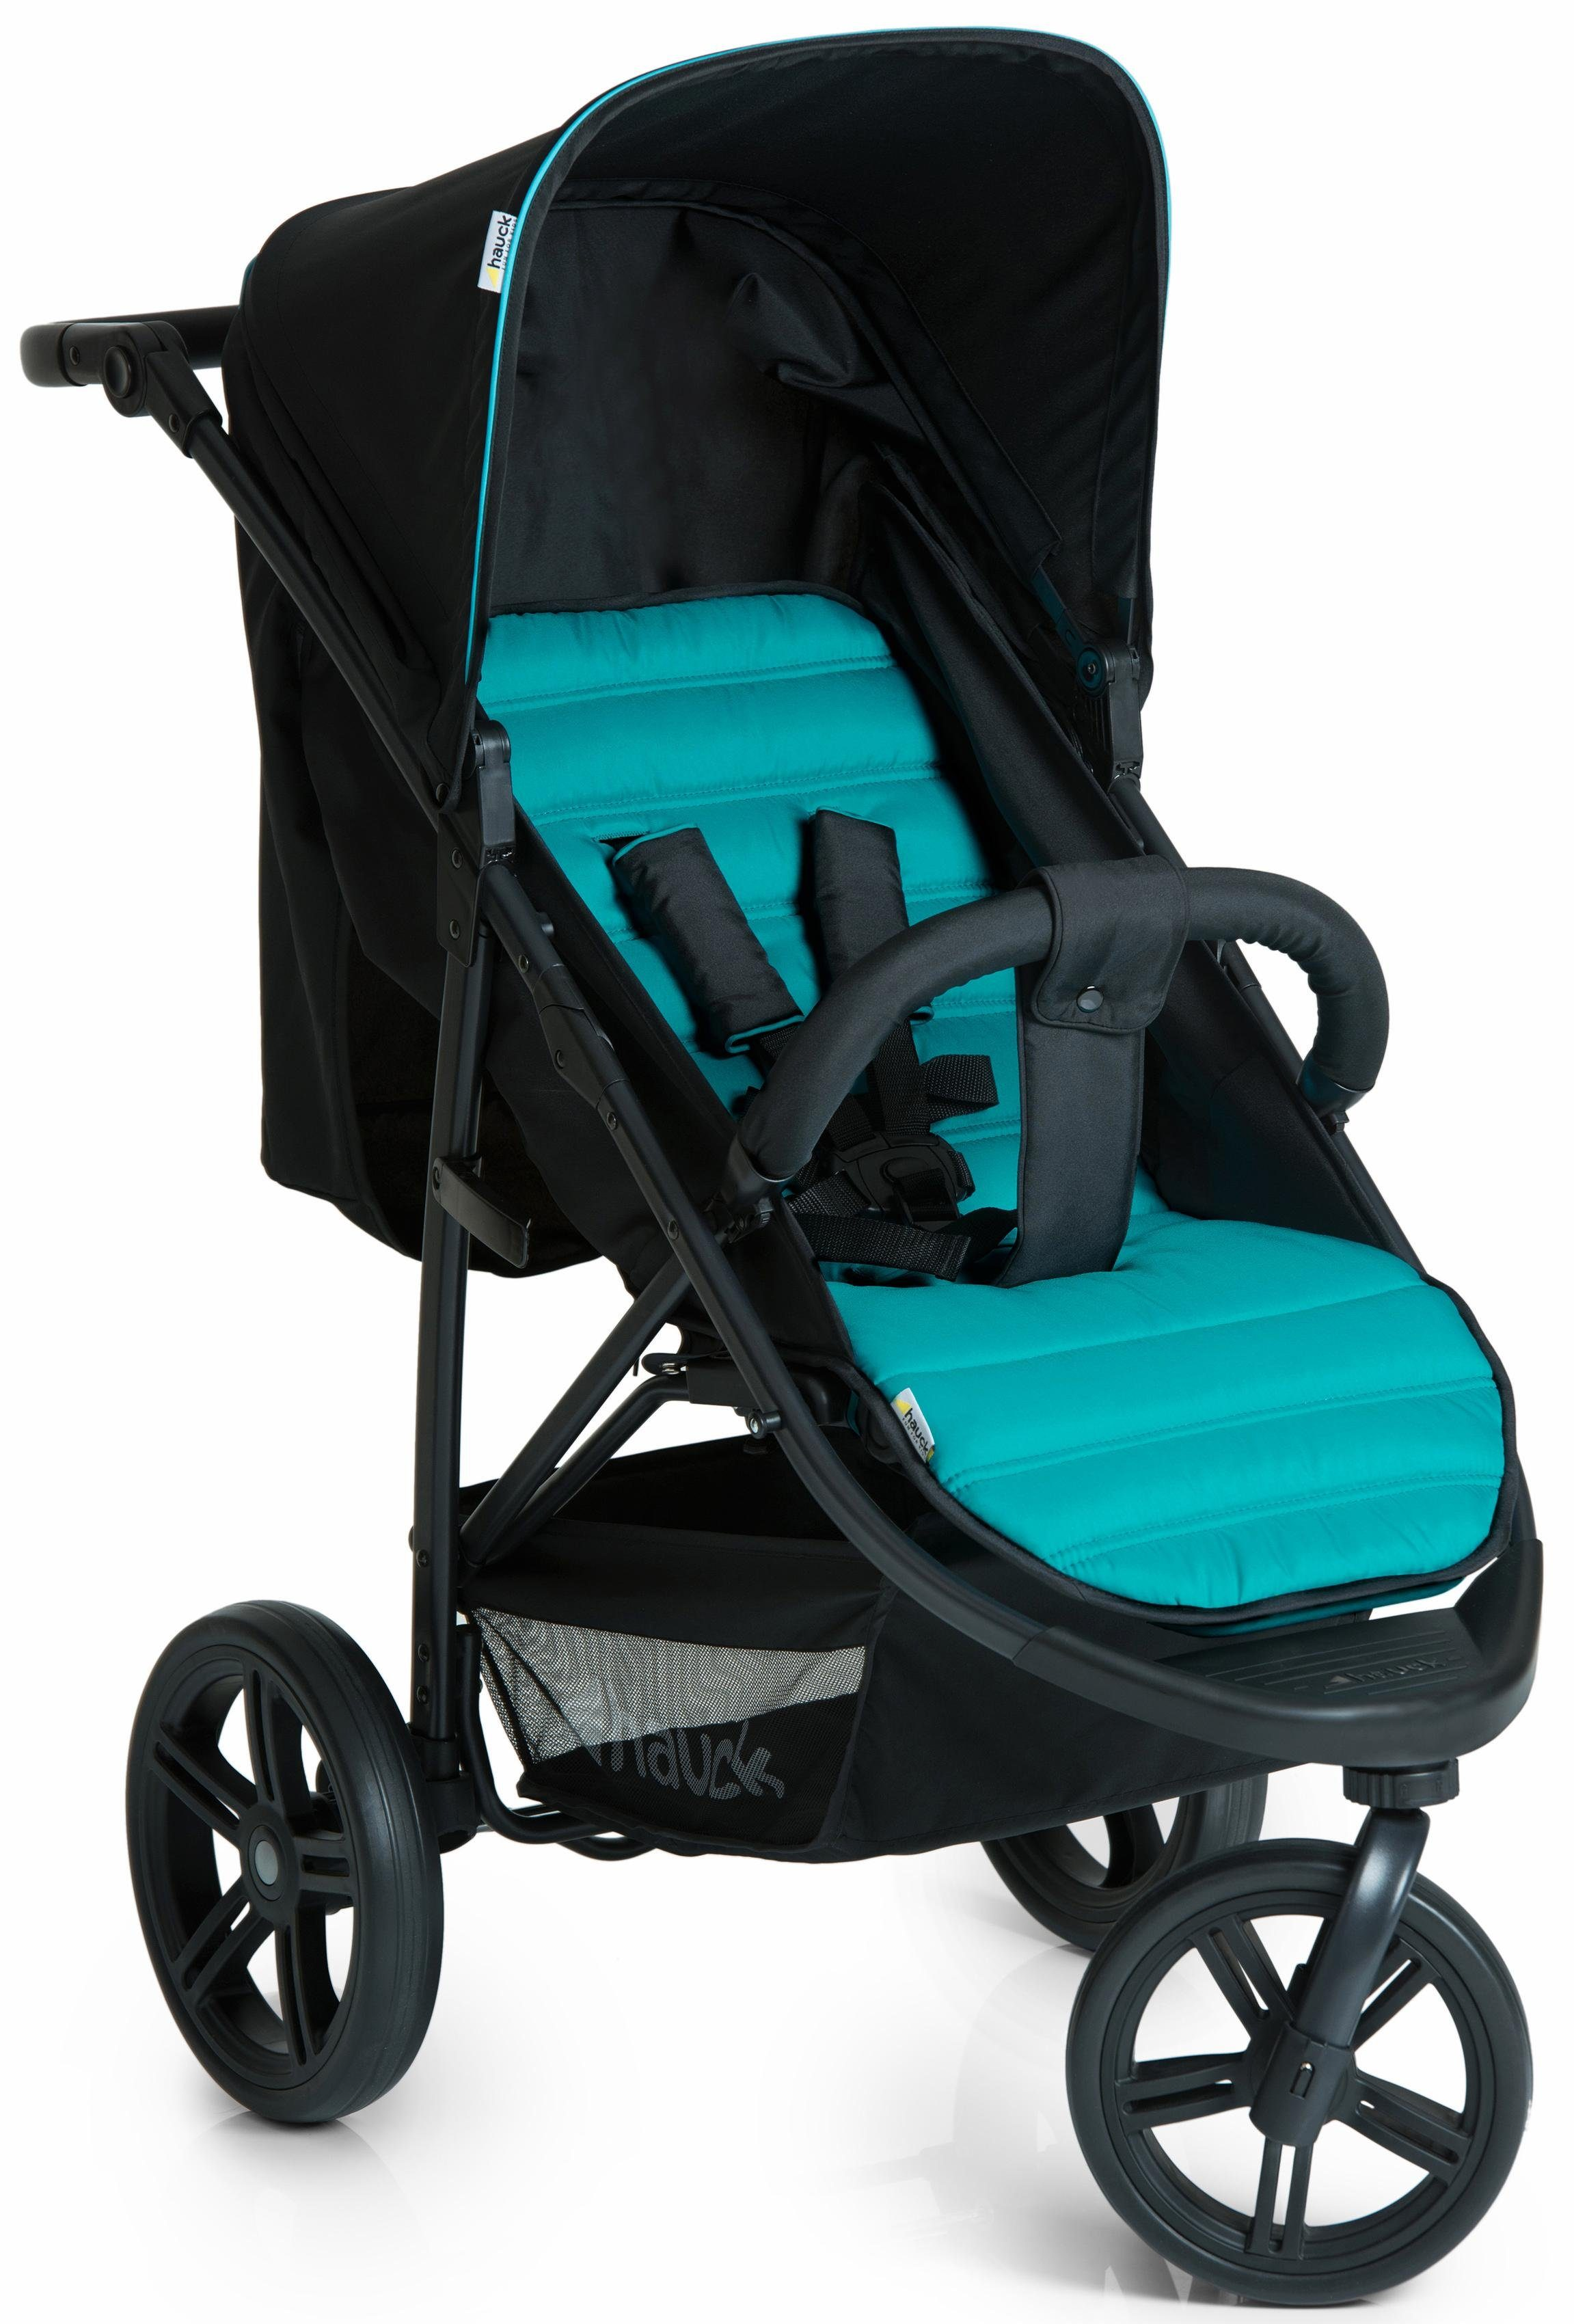 hauck FUN FOR KIDS Dreirad Kinderwagen, »Rapid 3 Caviar/Türkis«